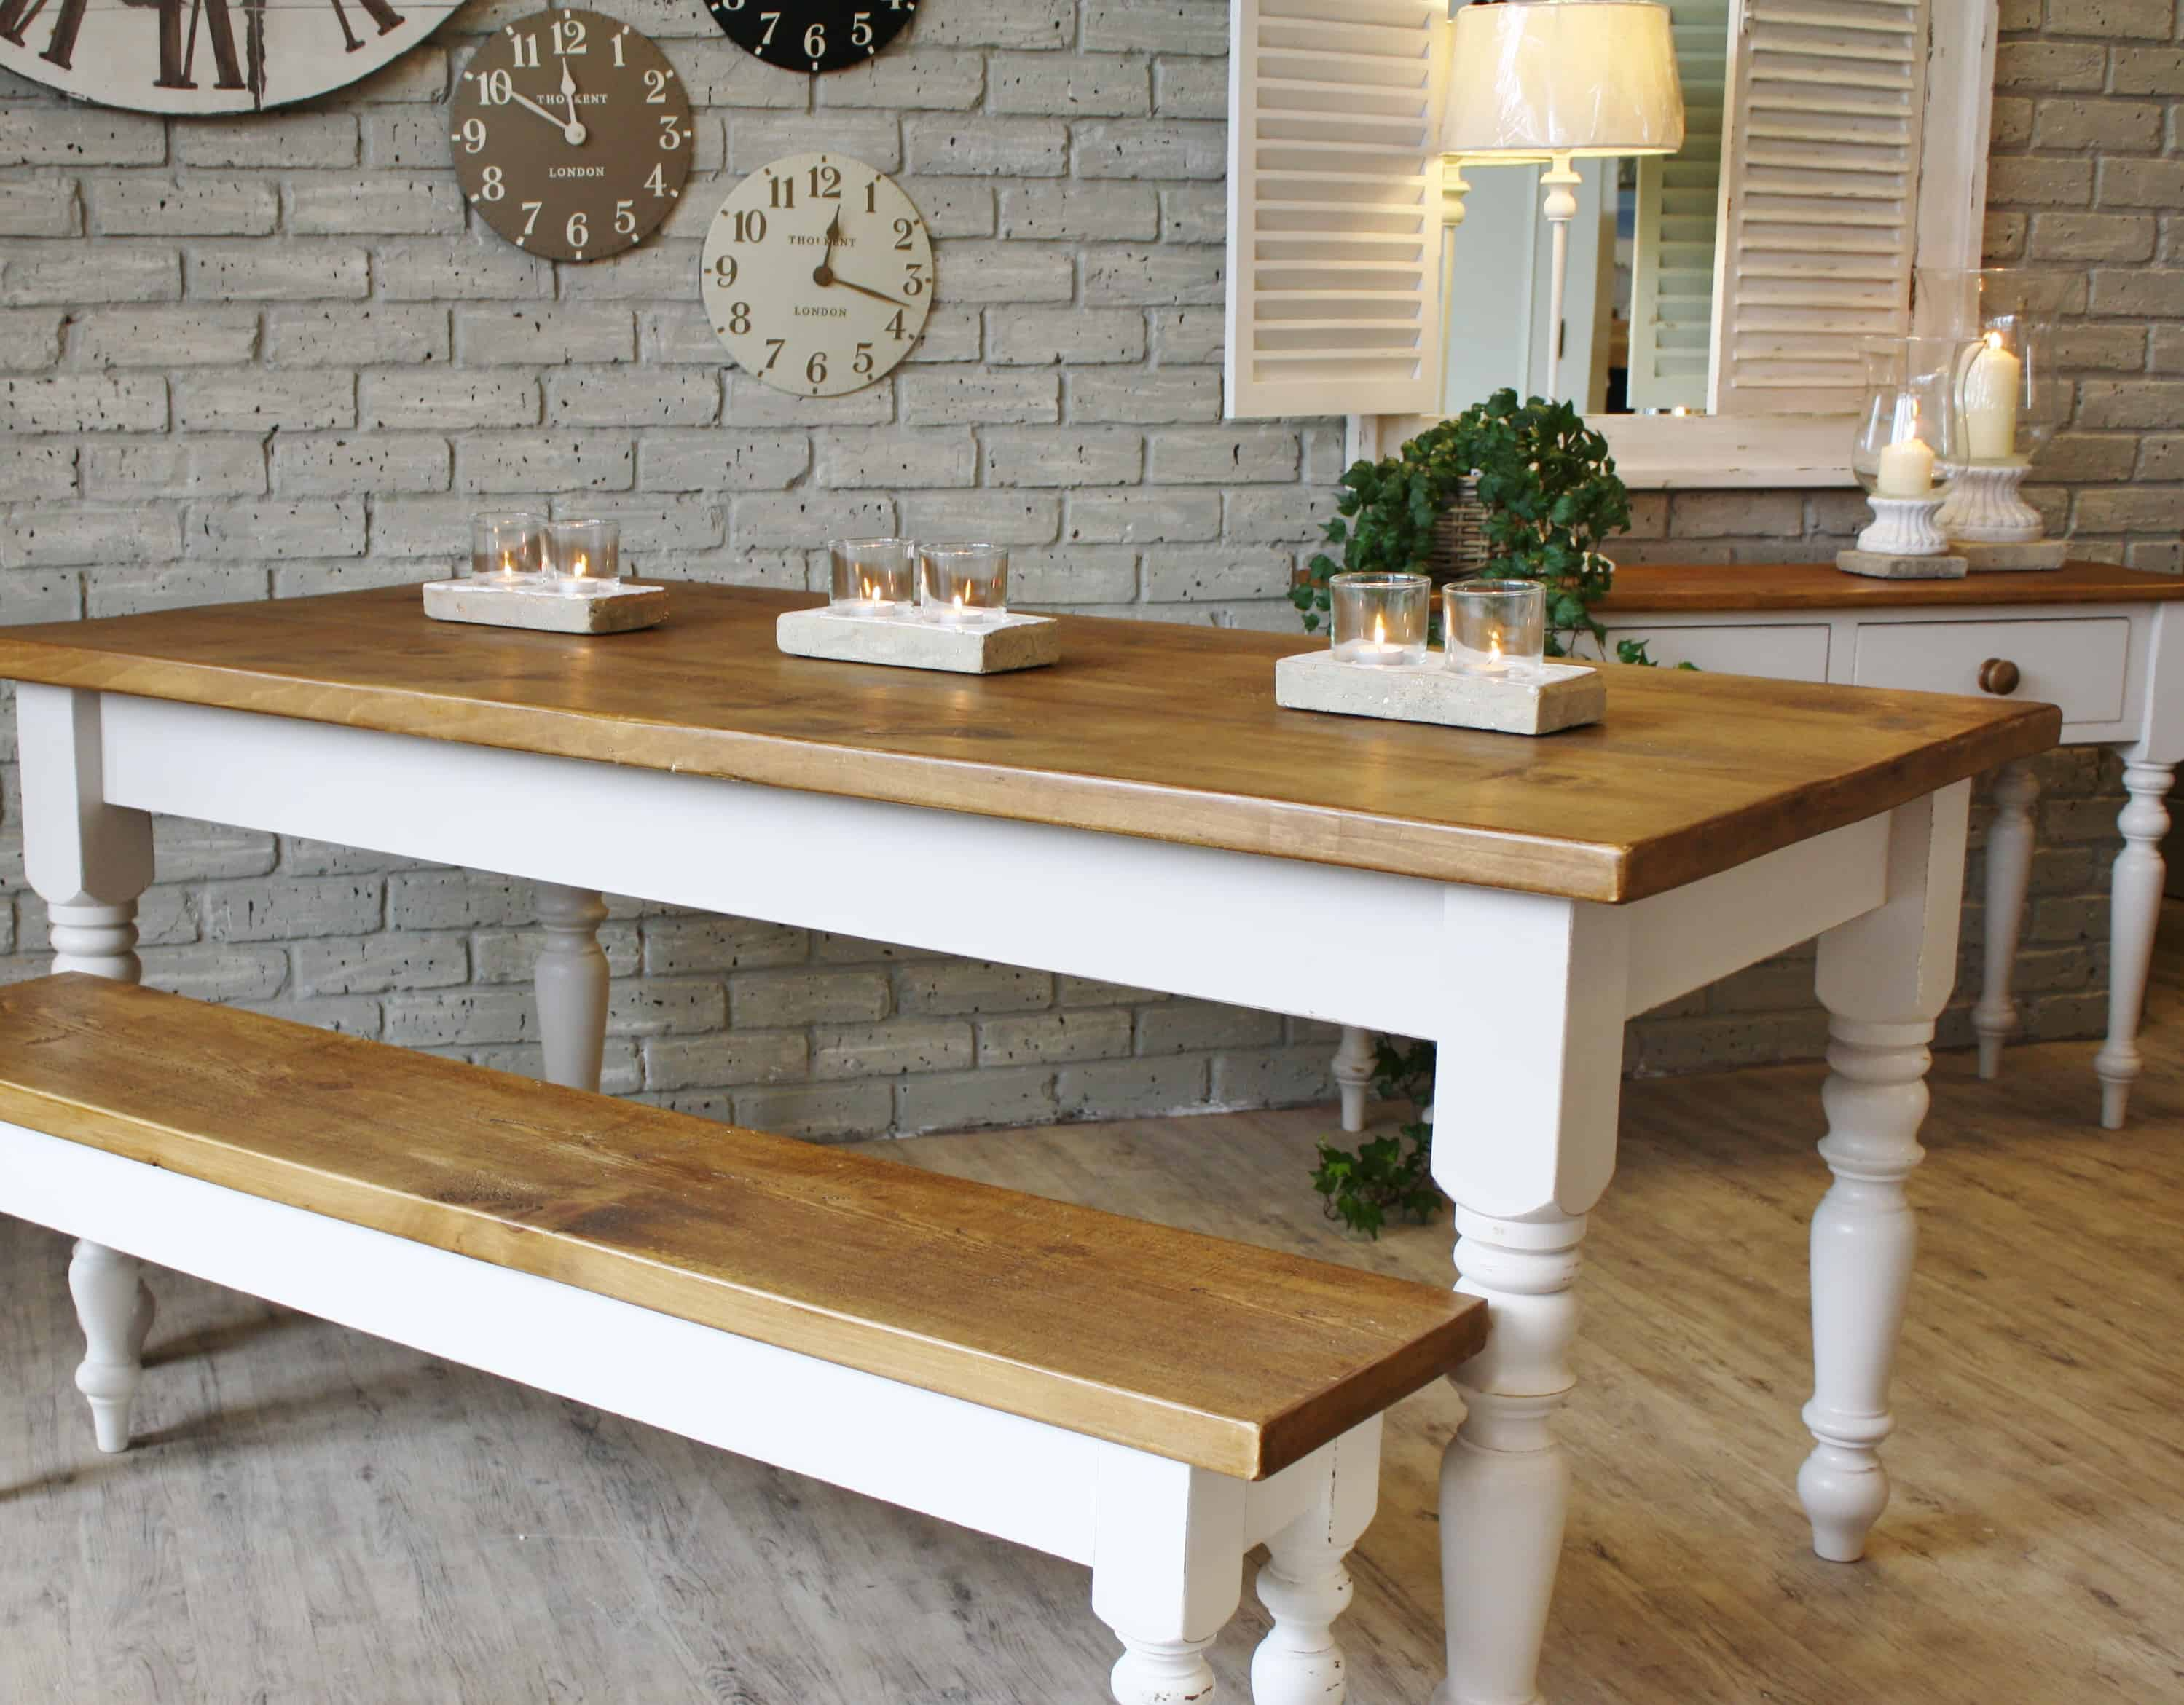 Add A Wooden Bench